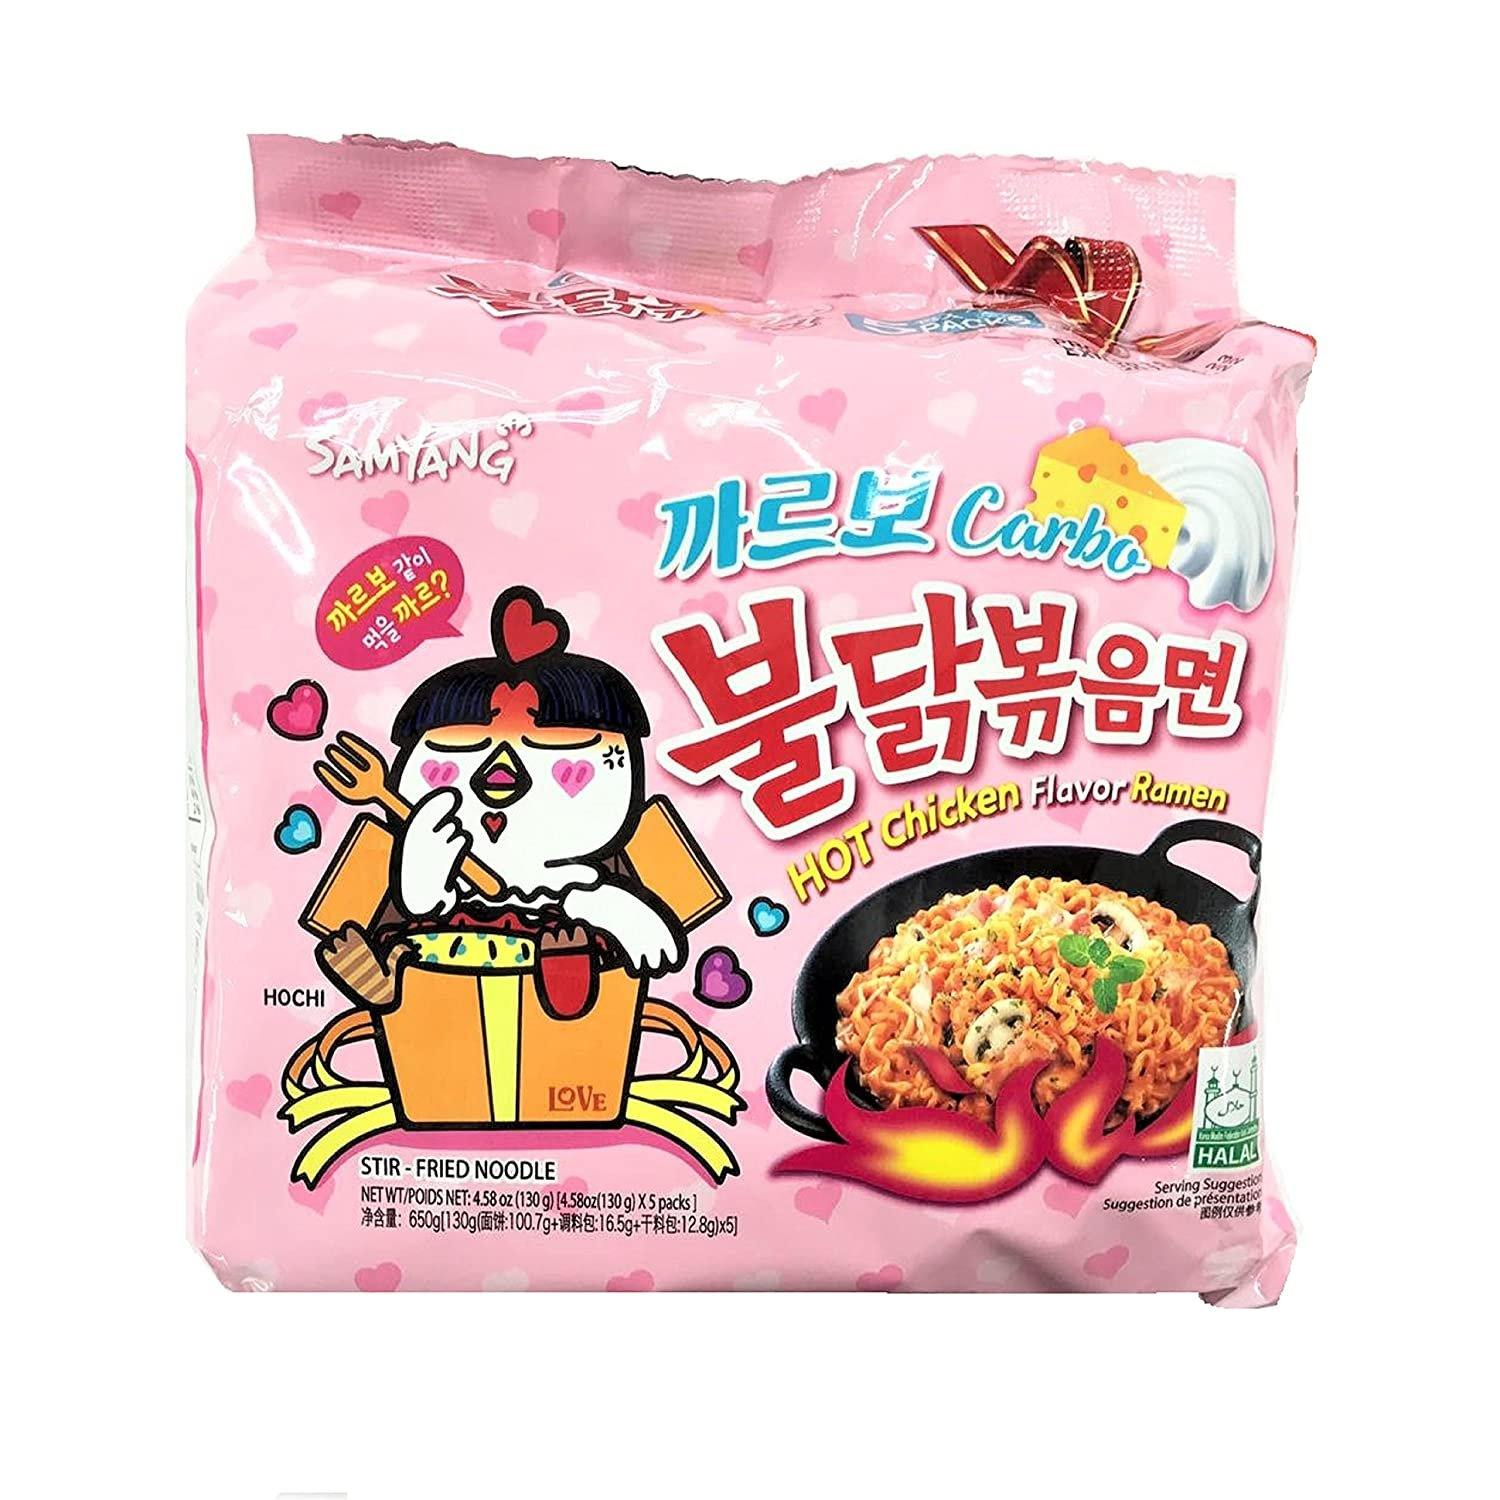 Limited Edition Samyang Carbo Fried Noodles, Spicy Chicken